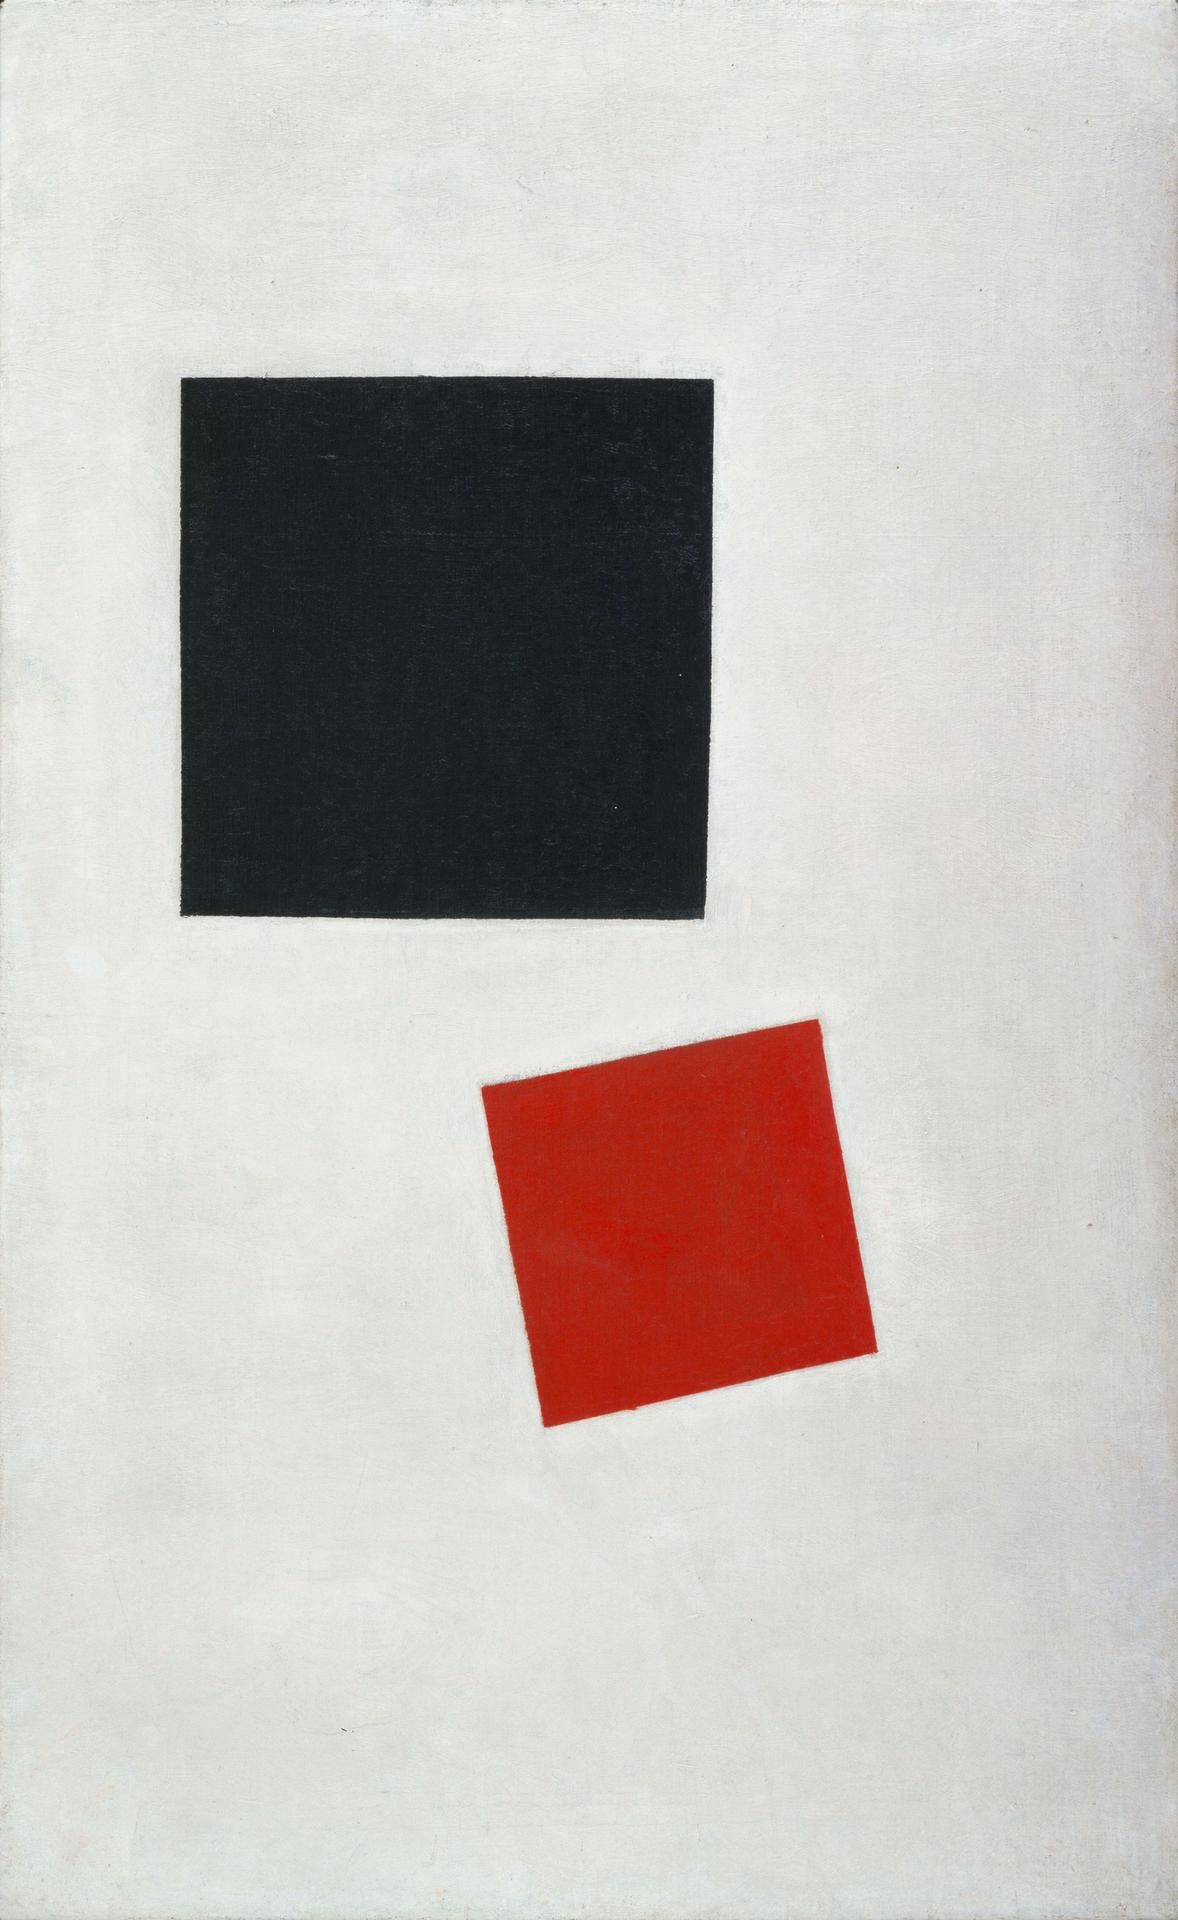 an analysis of suprematism in the painting red square by russian painter kasimir malevich Order museum quality kasimir malevich reproduction paintings on canvas each kasimir malevich replica for sale will be 100% hand-painted by artist  1878 - 1935 • russian • painter • suprematist in 1913, trying desperately to liberate art from the ballast of the representational world, i sought refuge in the square - kasimir malevich.